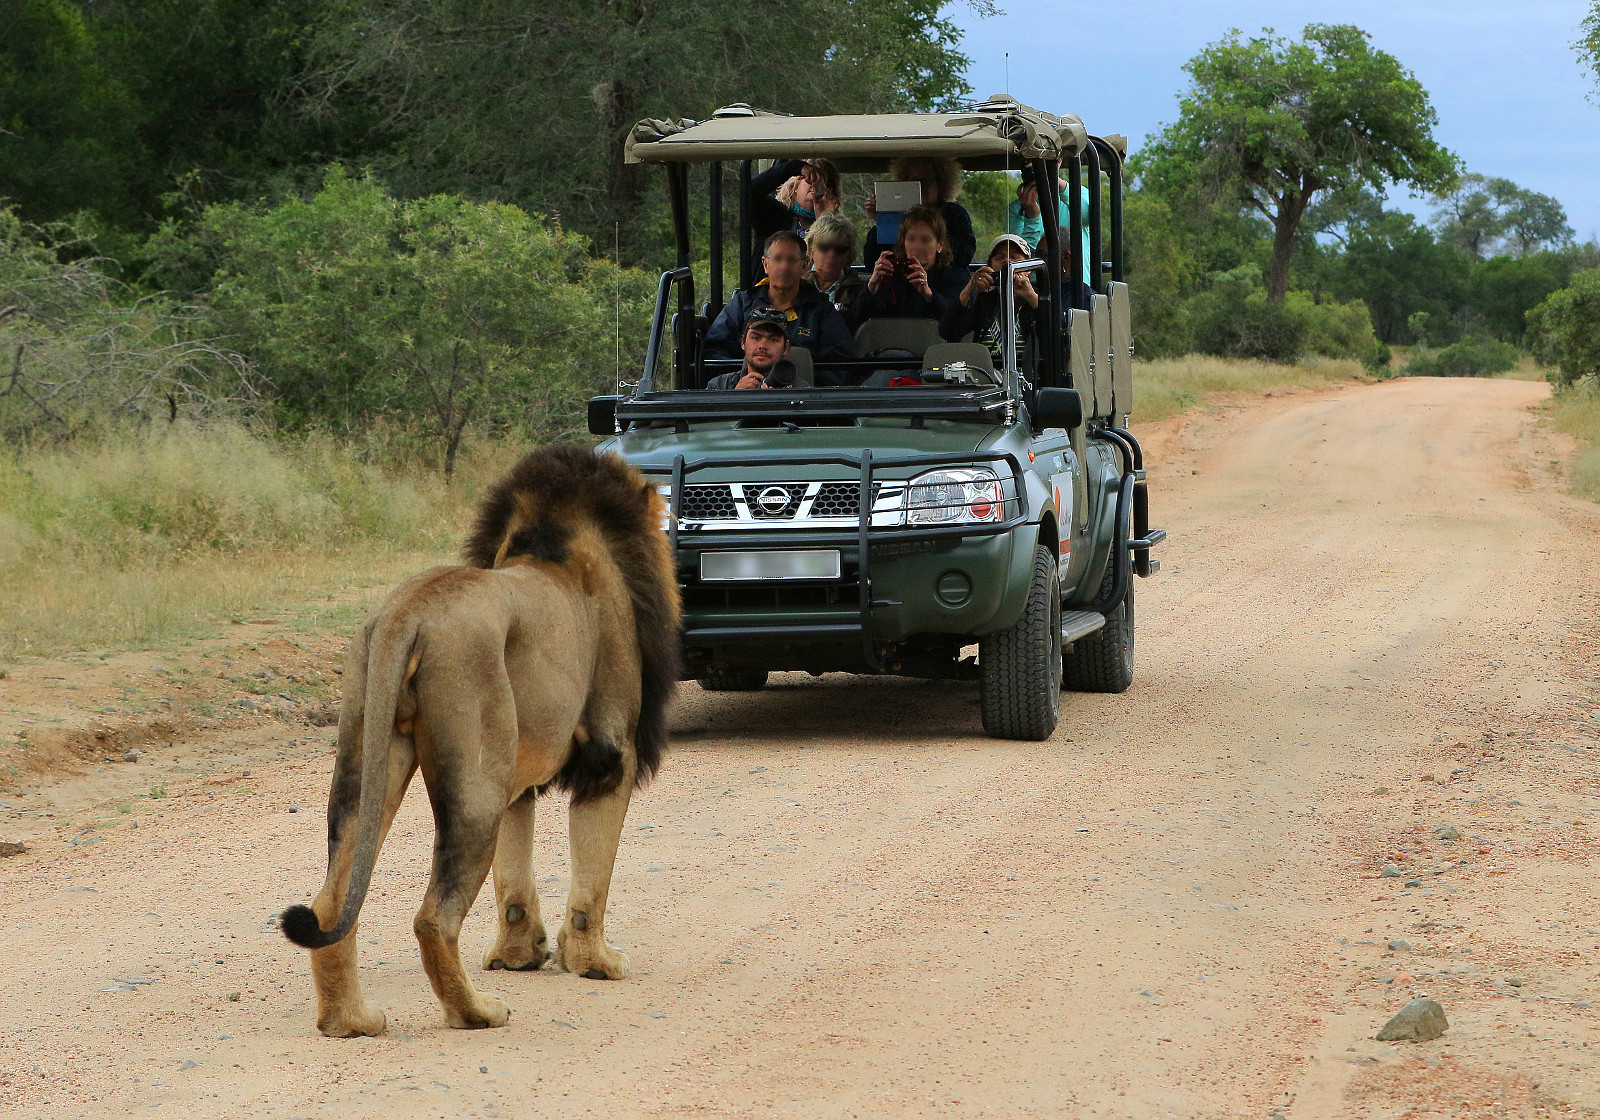 Budget Kruger Park Safari - 4 Day Group Tour